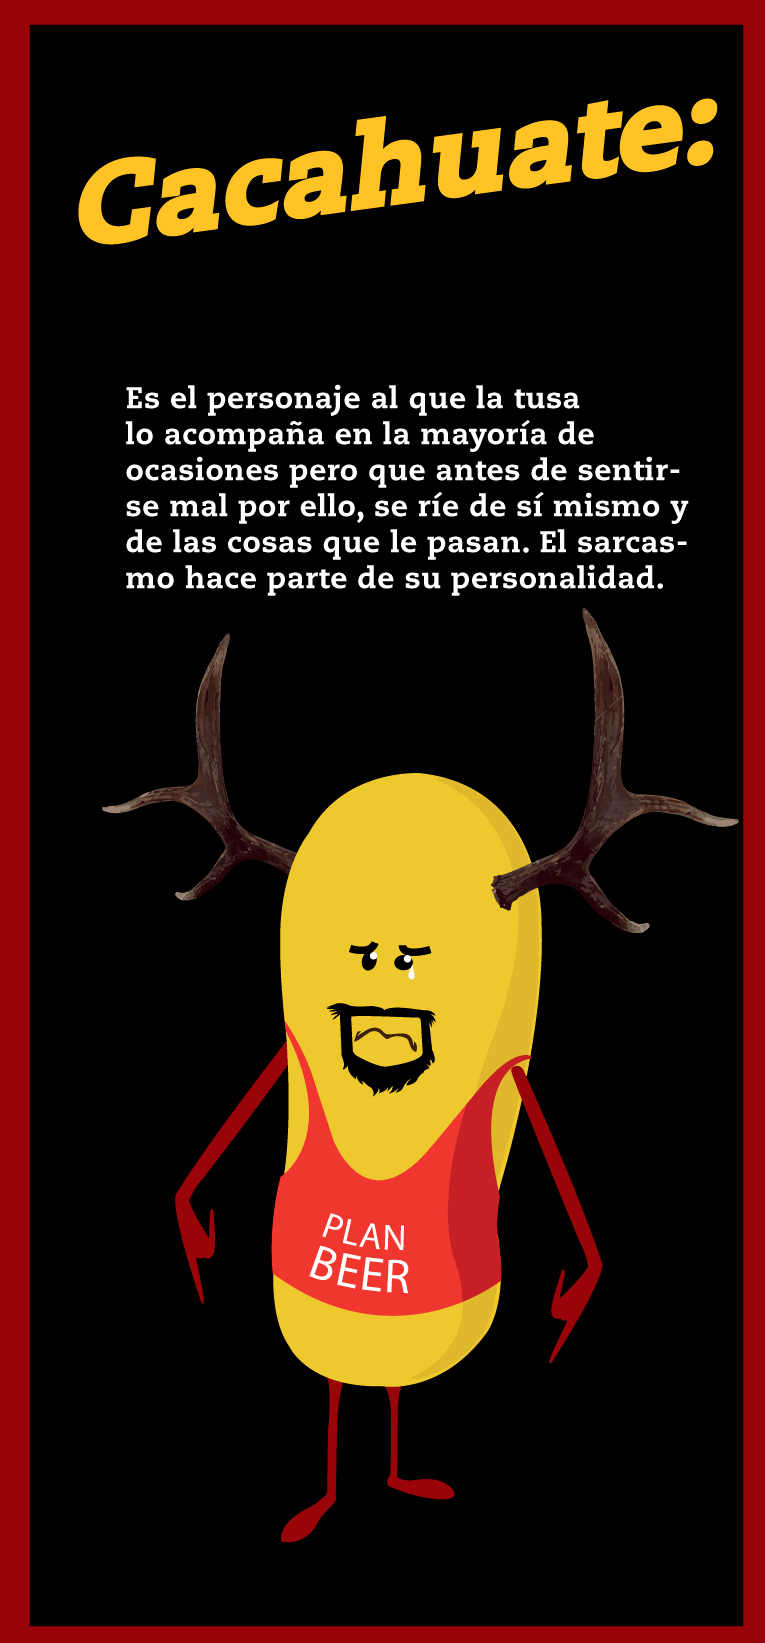 cacahuete-personajebeer-min.png